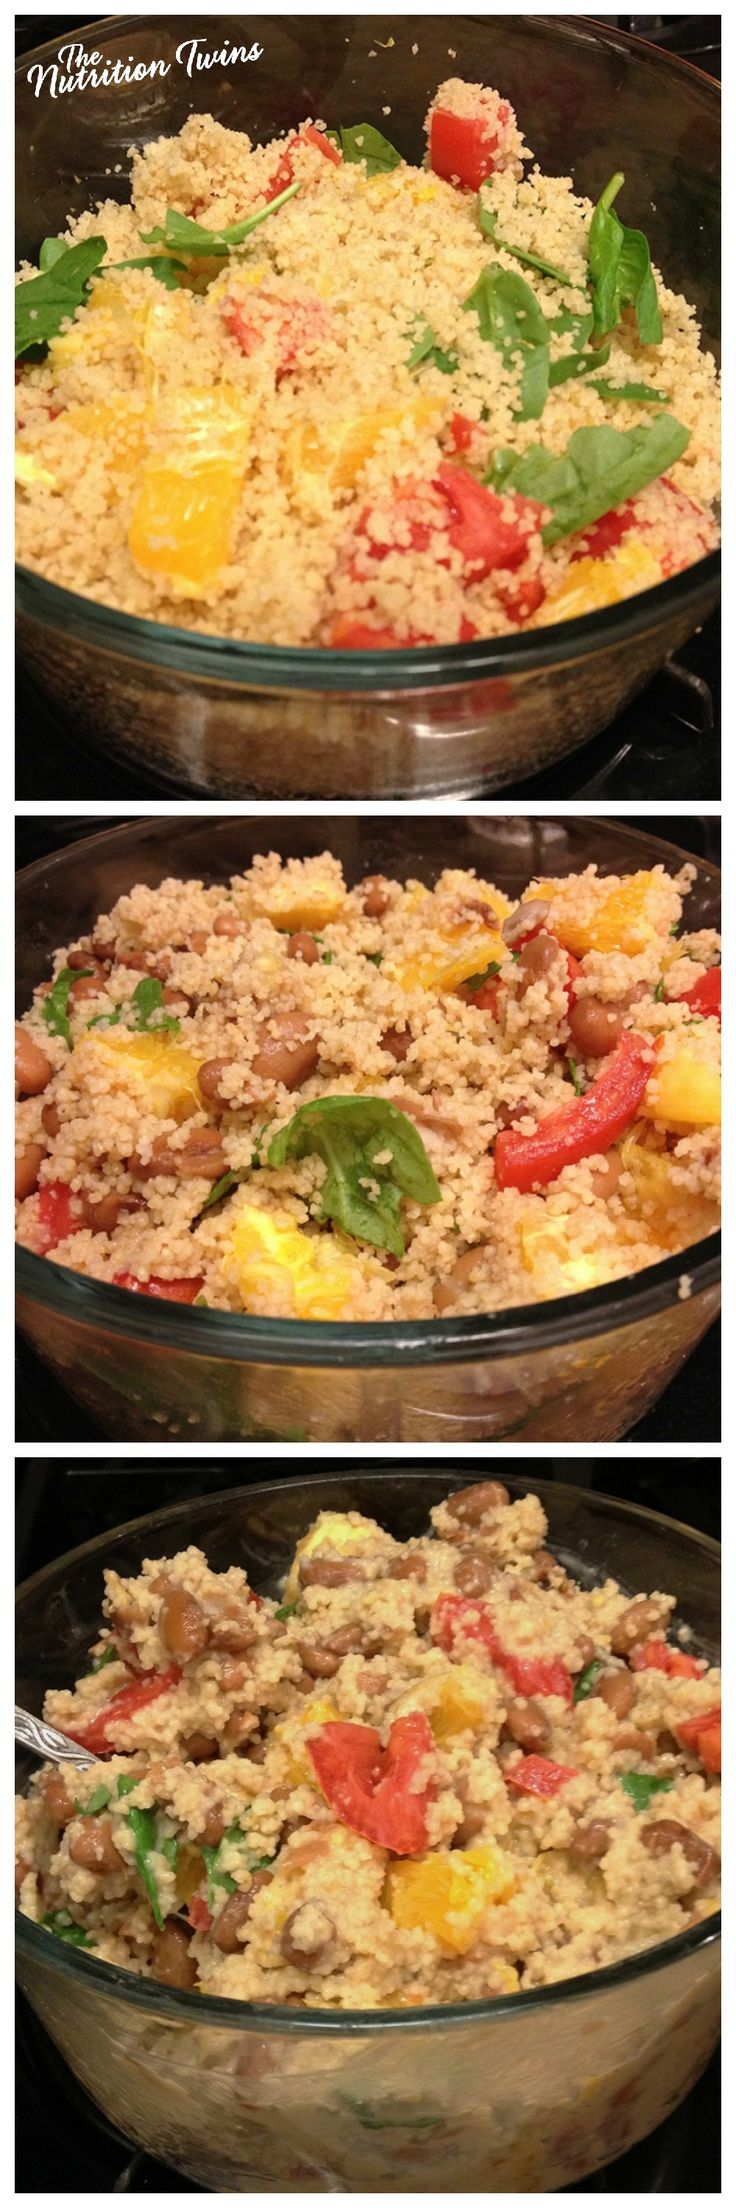 Whole Wheat Couscous & Citrus Champagne Vinaigrette | HUGE Portion Only 315 Calories | Super Satisfying &Easy | For MORE RECIPES please SIGN UP for our FREE NEWSLETTER www.NutritionTwins.com